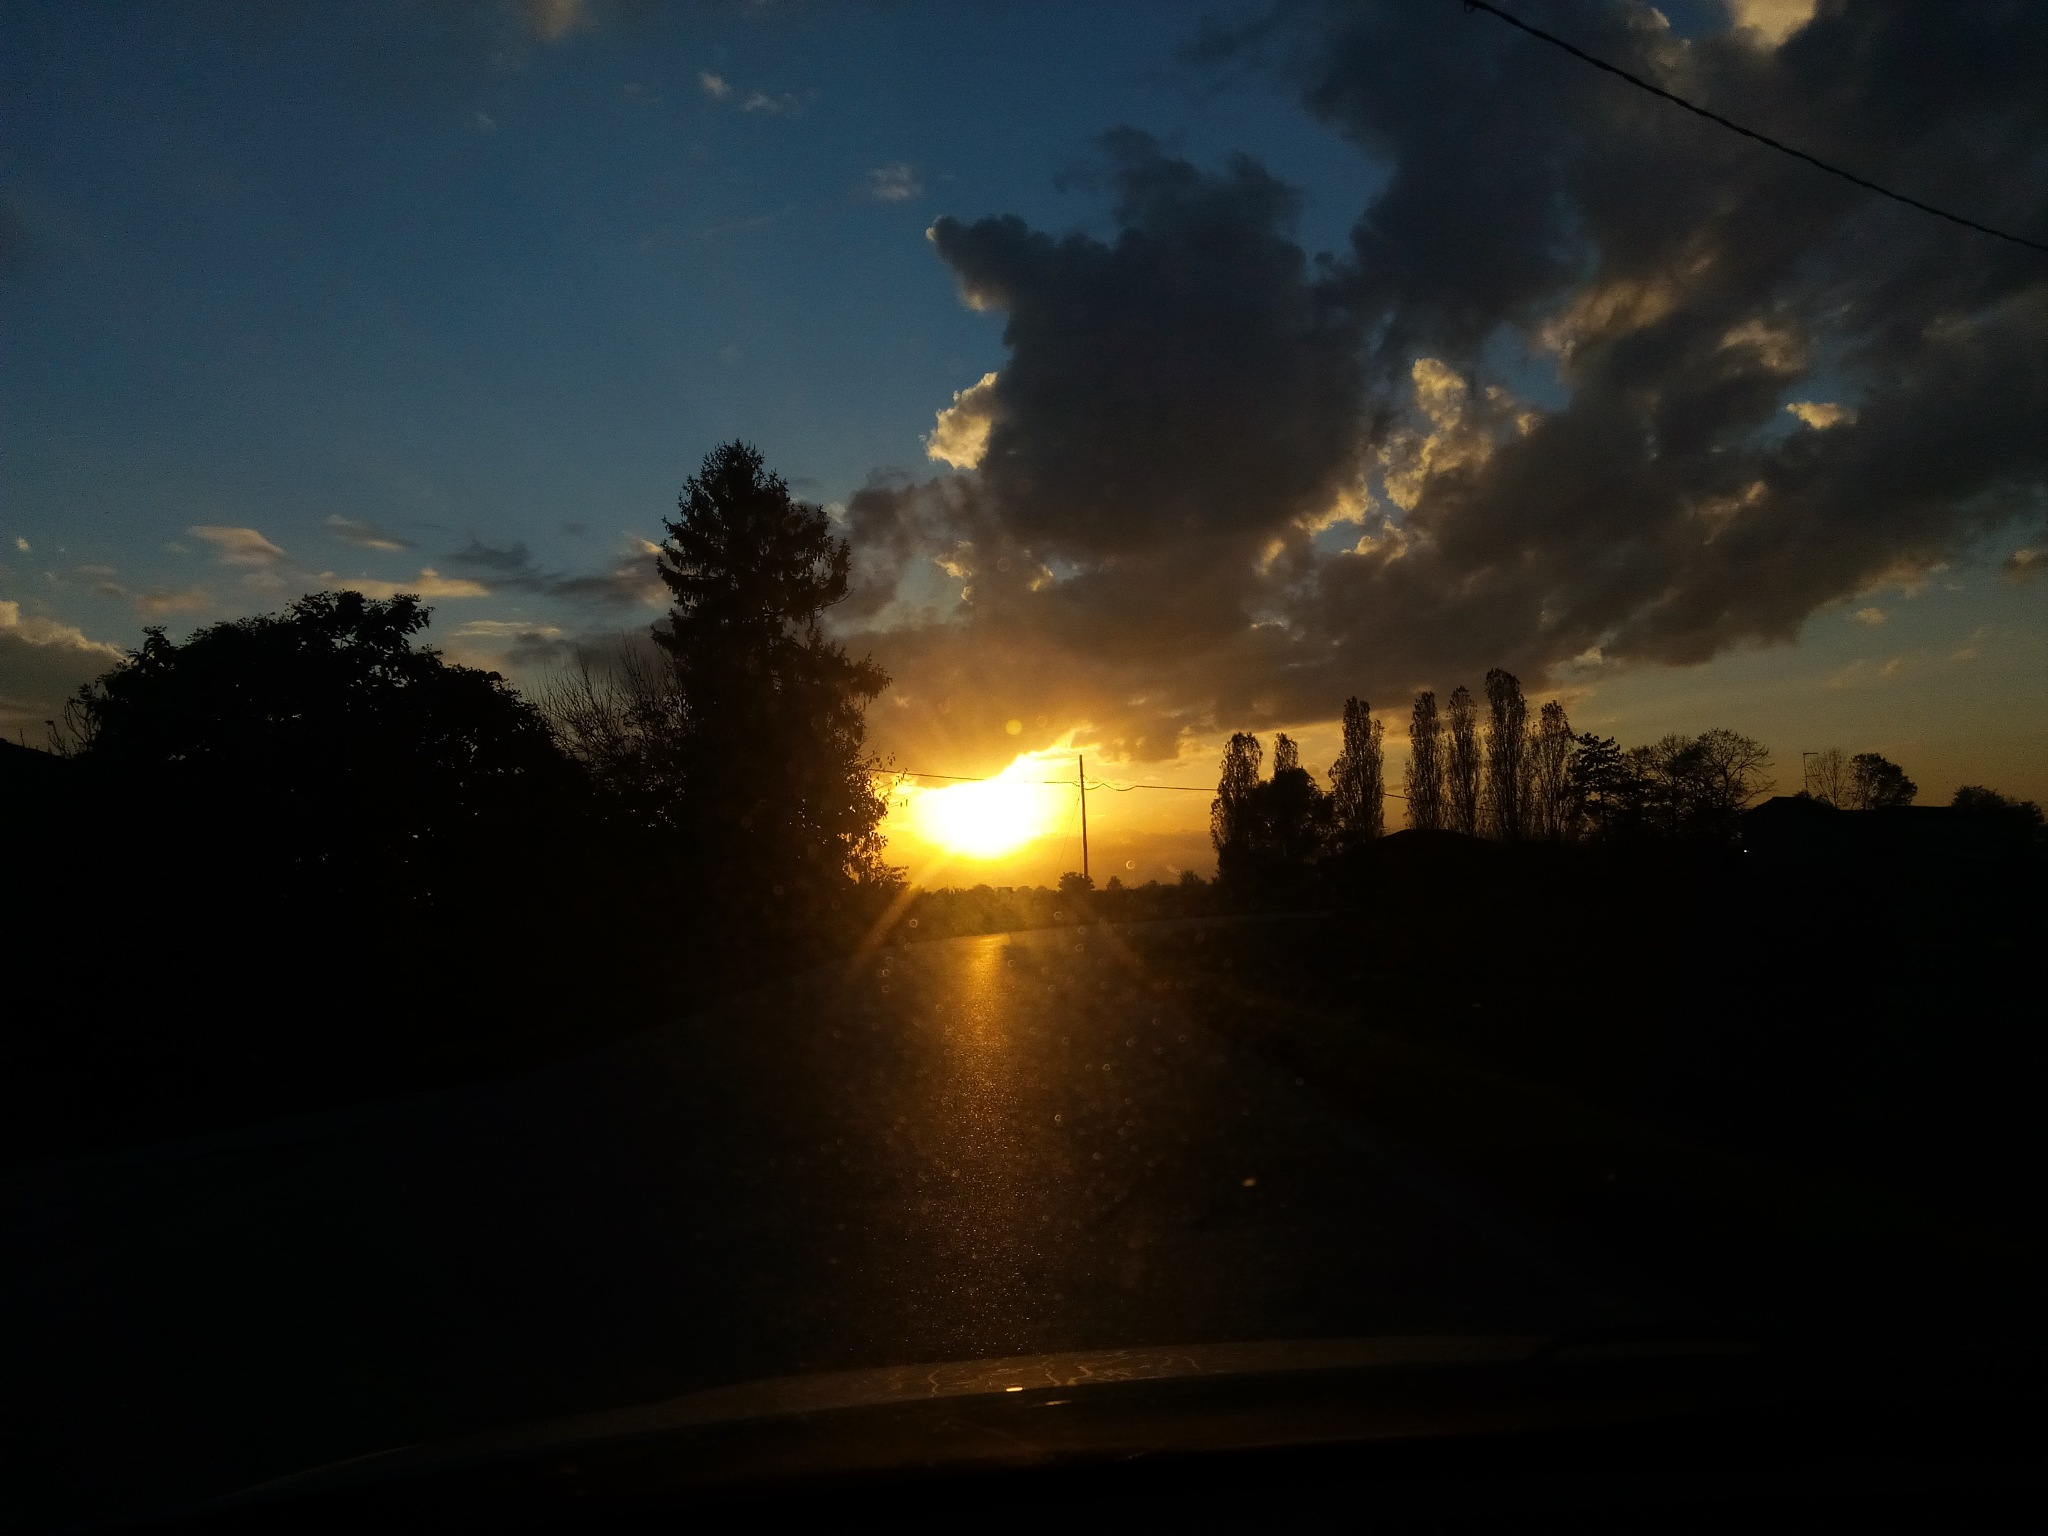 THE SUNSET IN THE CAR  by lorenz@69